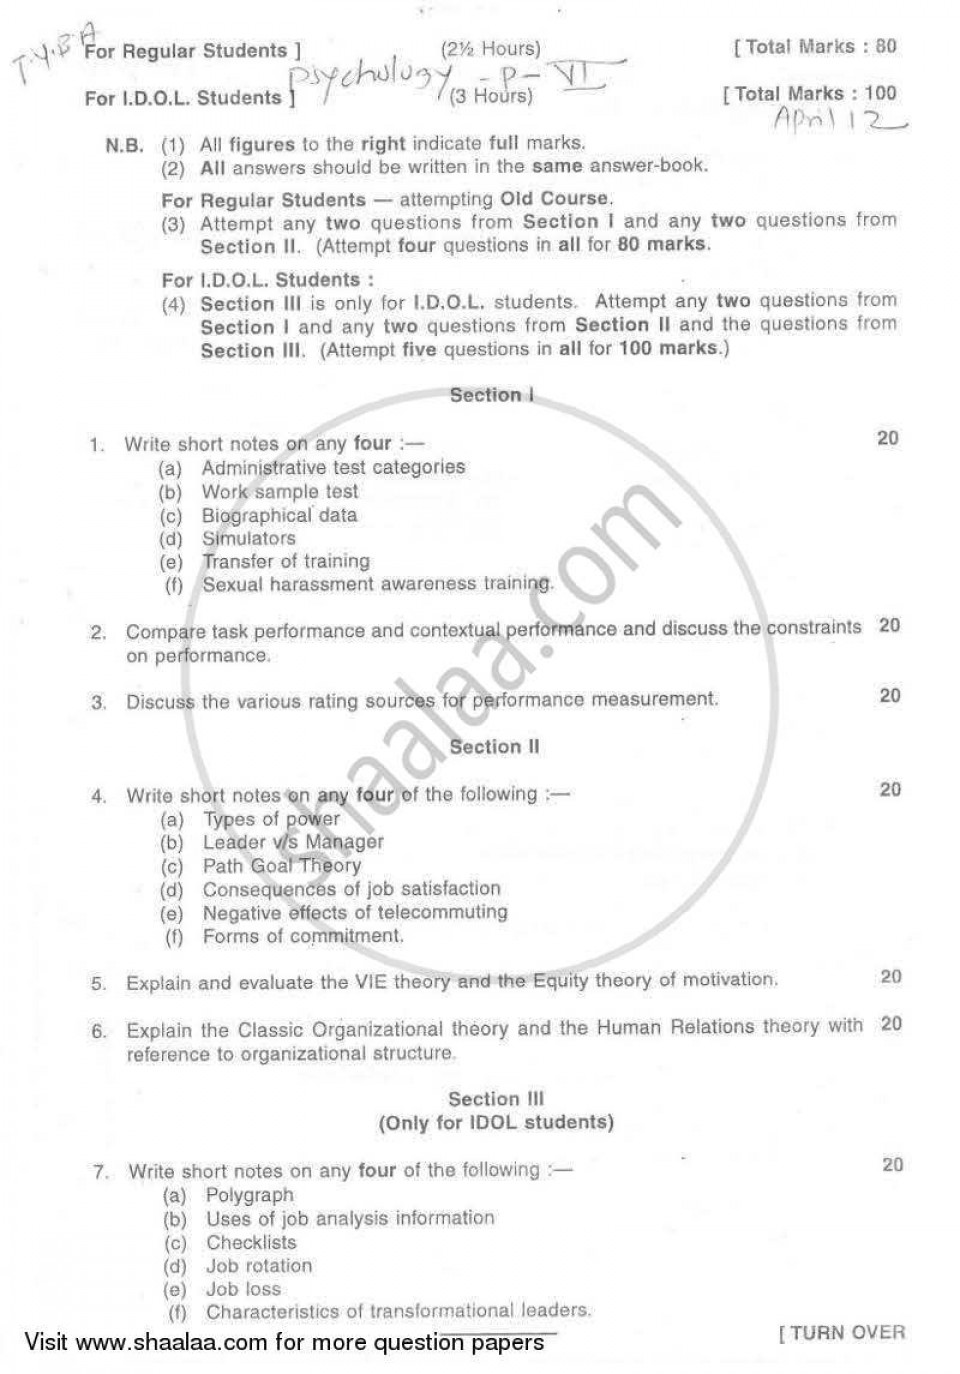 017 Psychologyearch Paper On Dreams University Of Mumbai Bachelor Industrial Organizational T Y Yearly Pattern Semester Tyba 2011 29a03925dfc524f2aa4cb10e4d3da996a Singular Psychology Research Articles 960